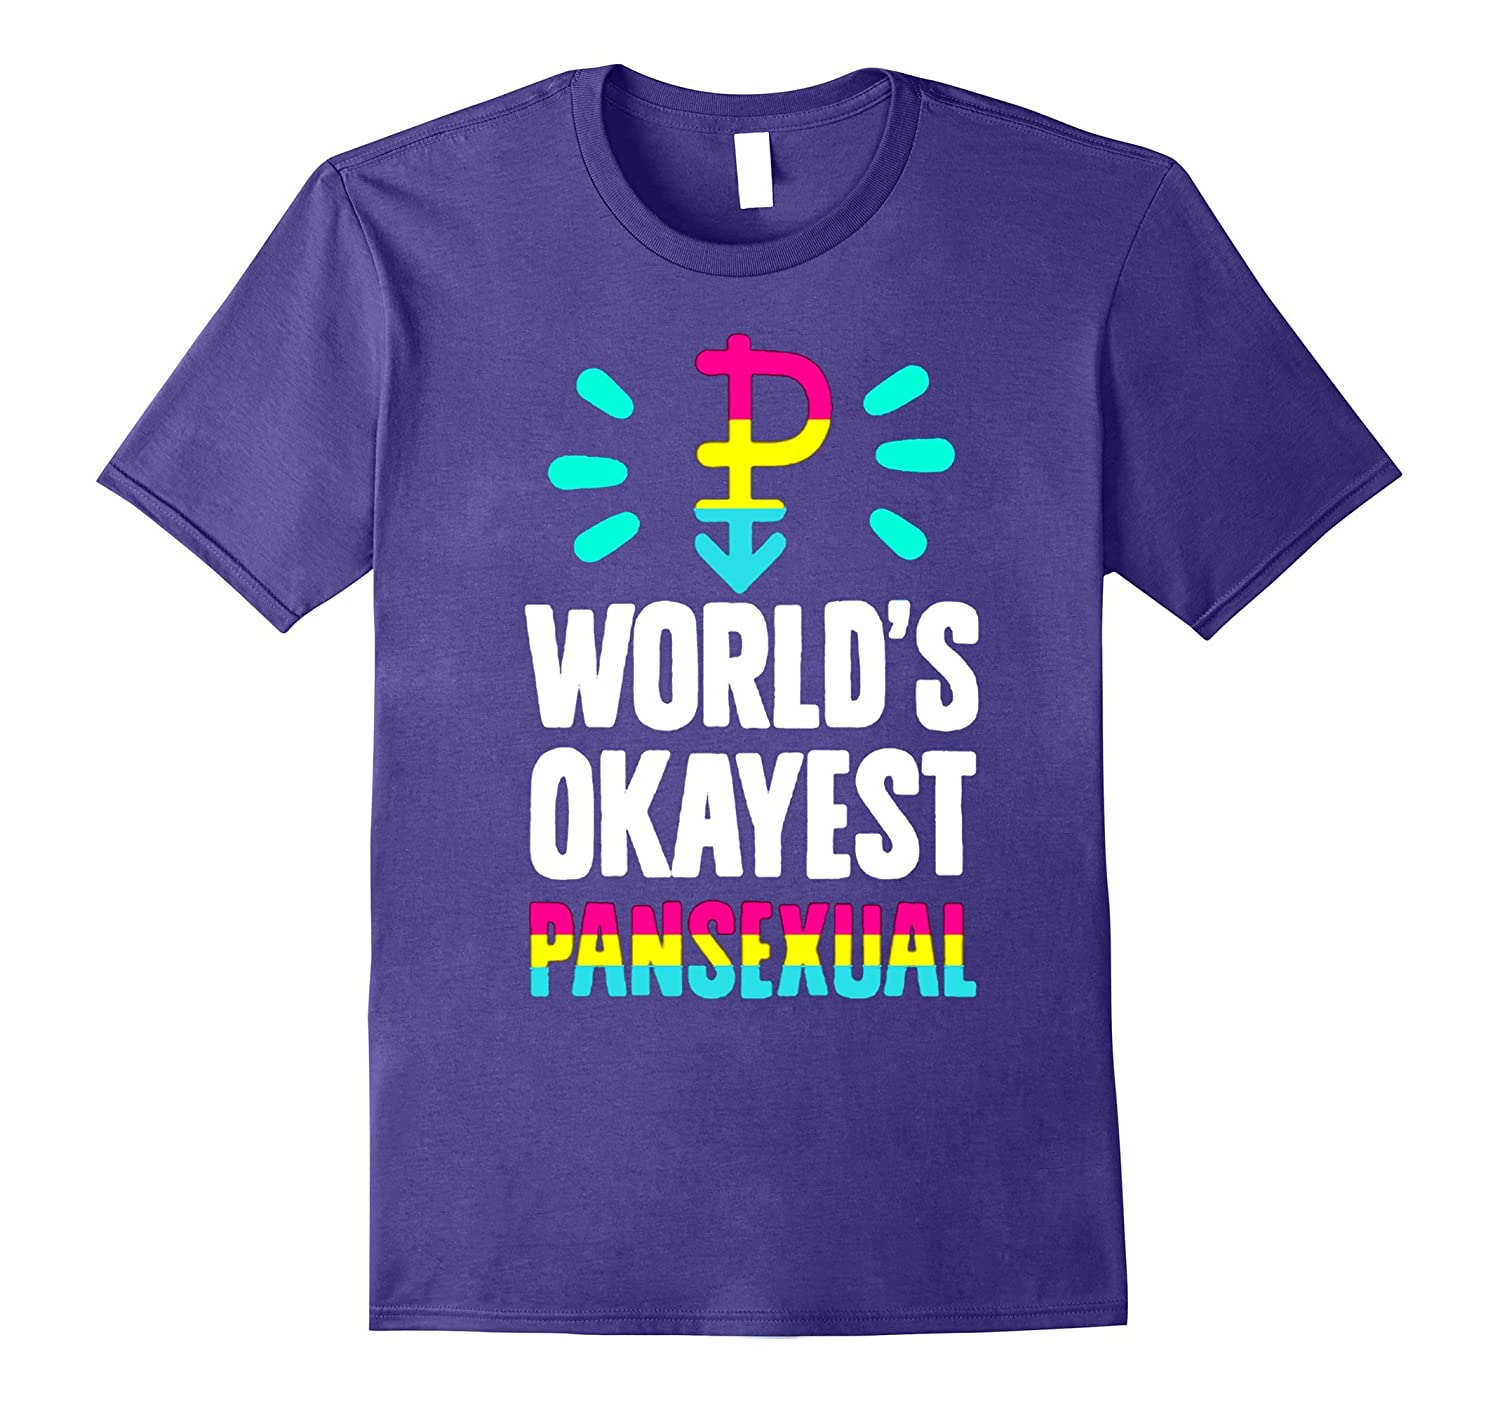 worlds okayest pansexual 2017 rainbow gay pride flag t shirt-CD